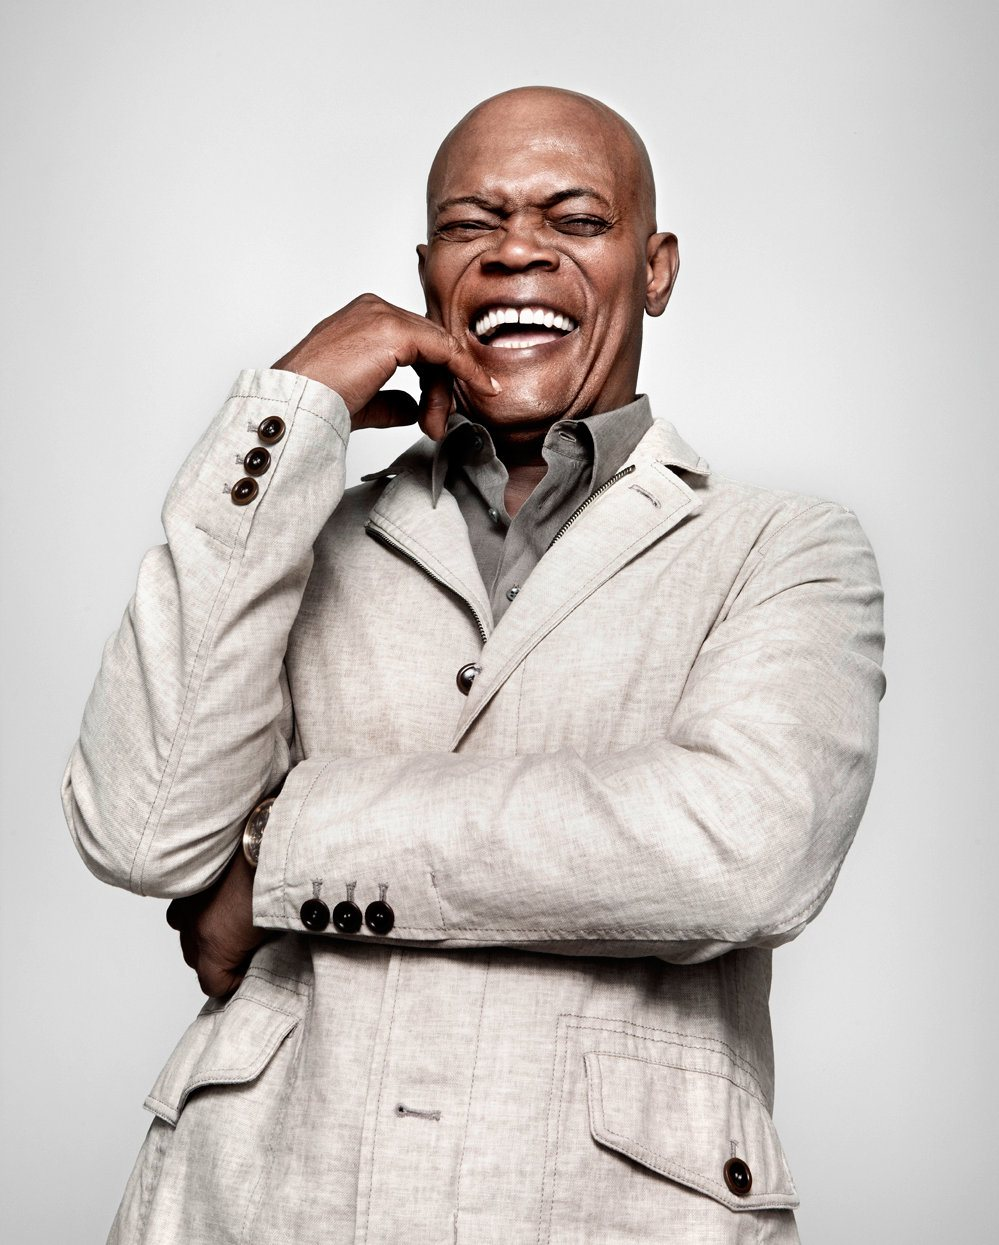 Samuel L. Jackson laughing.